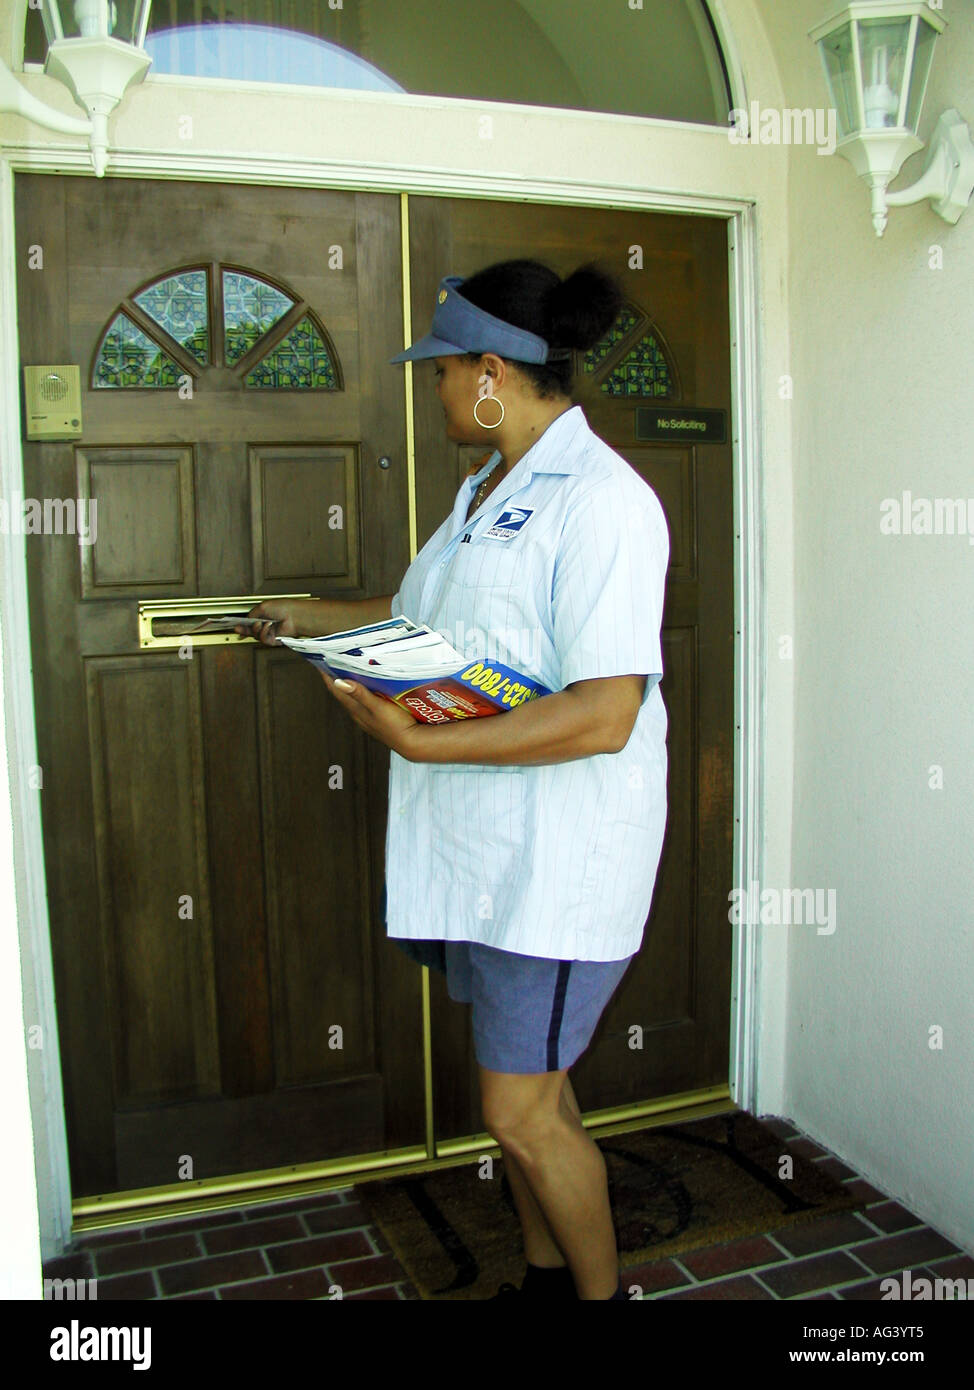 Female Postal Worker High Resolution Stock Photography And Images